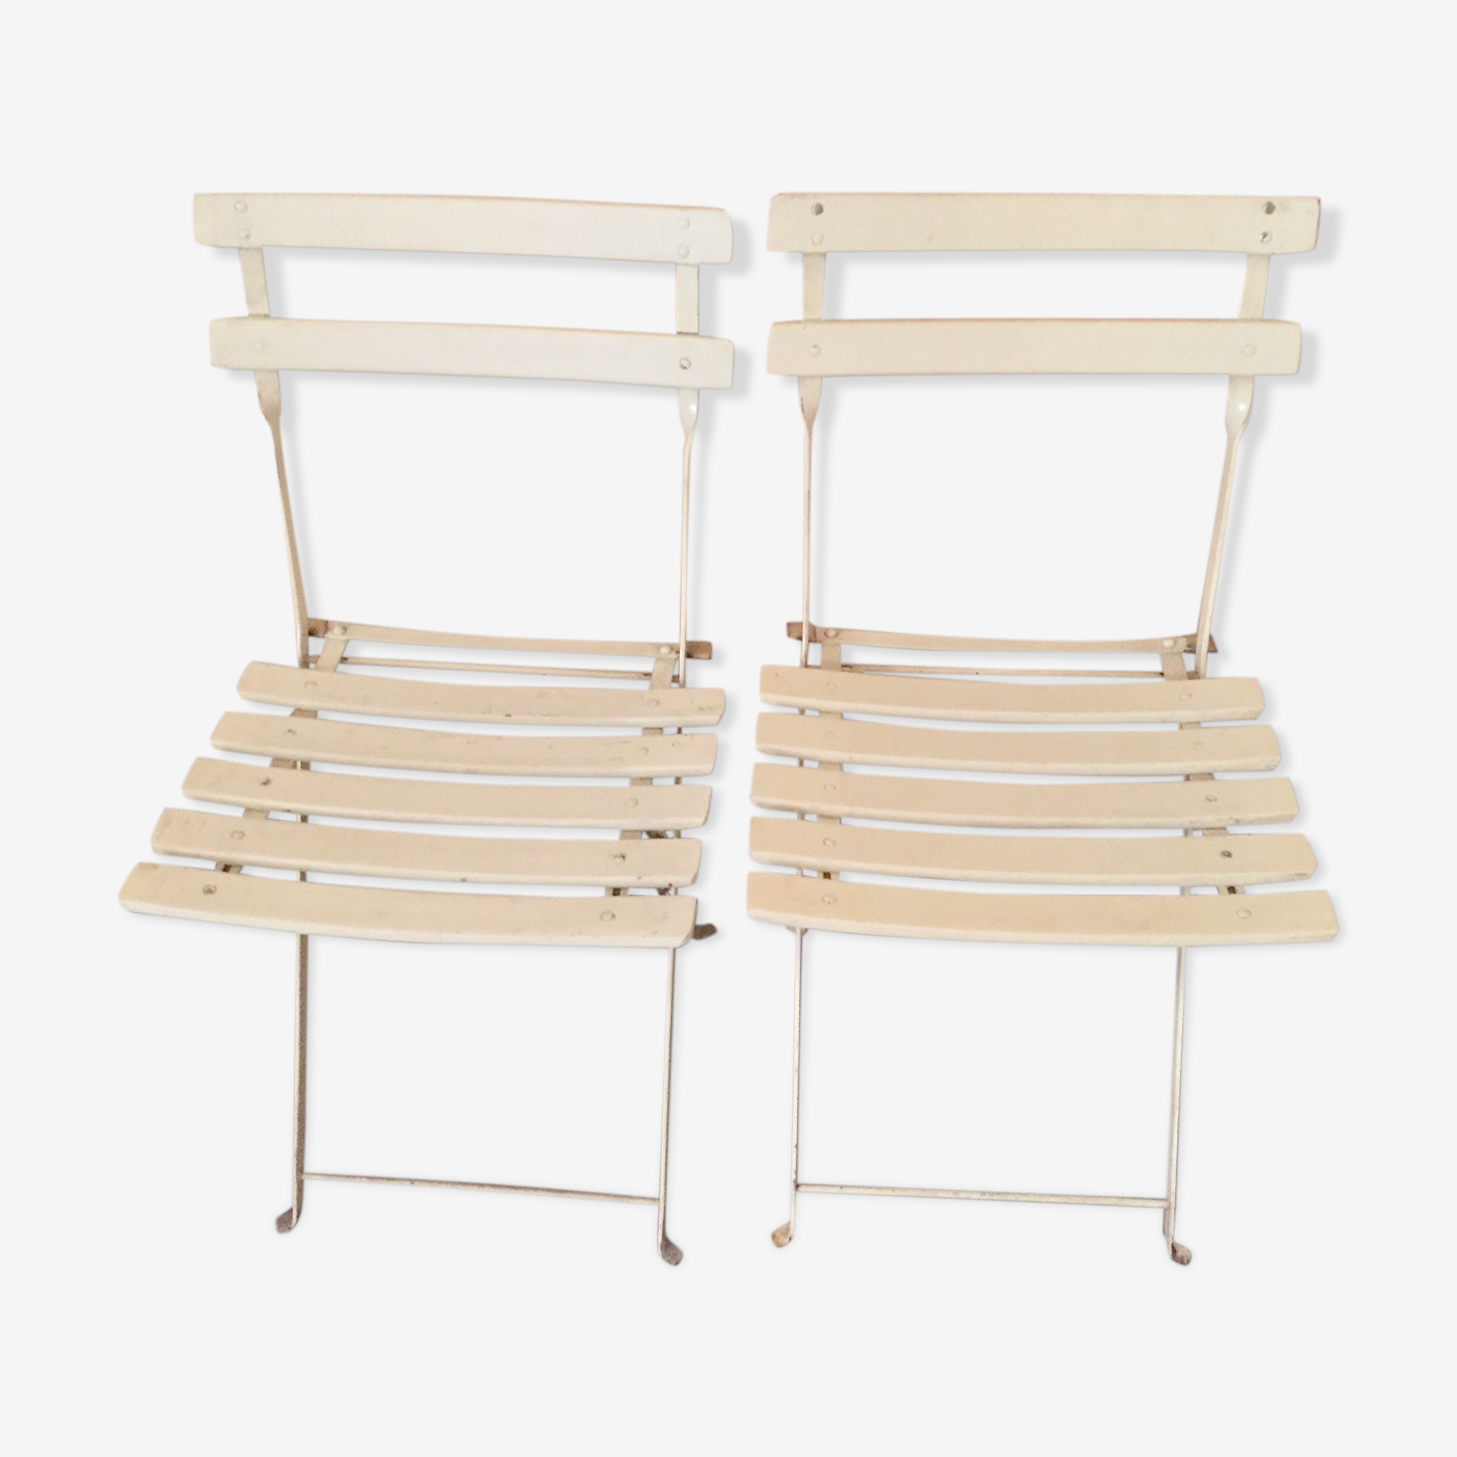 2 folding garden chairs in wood and metal